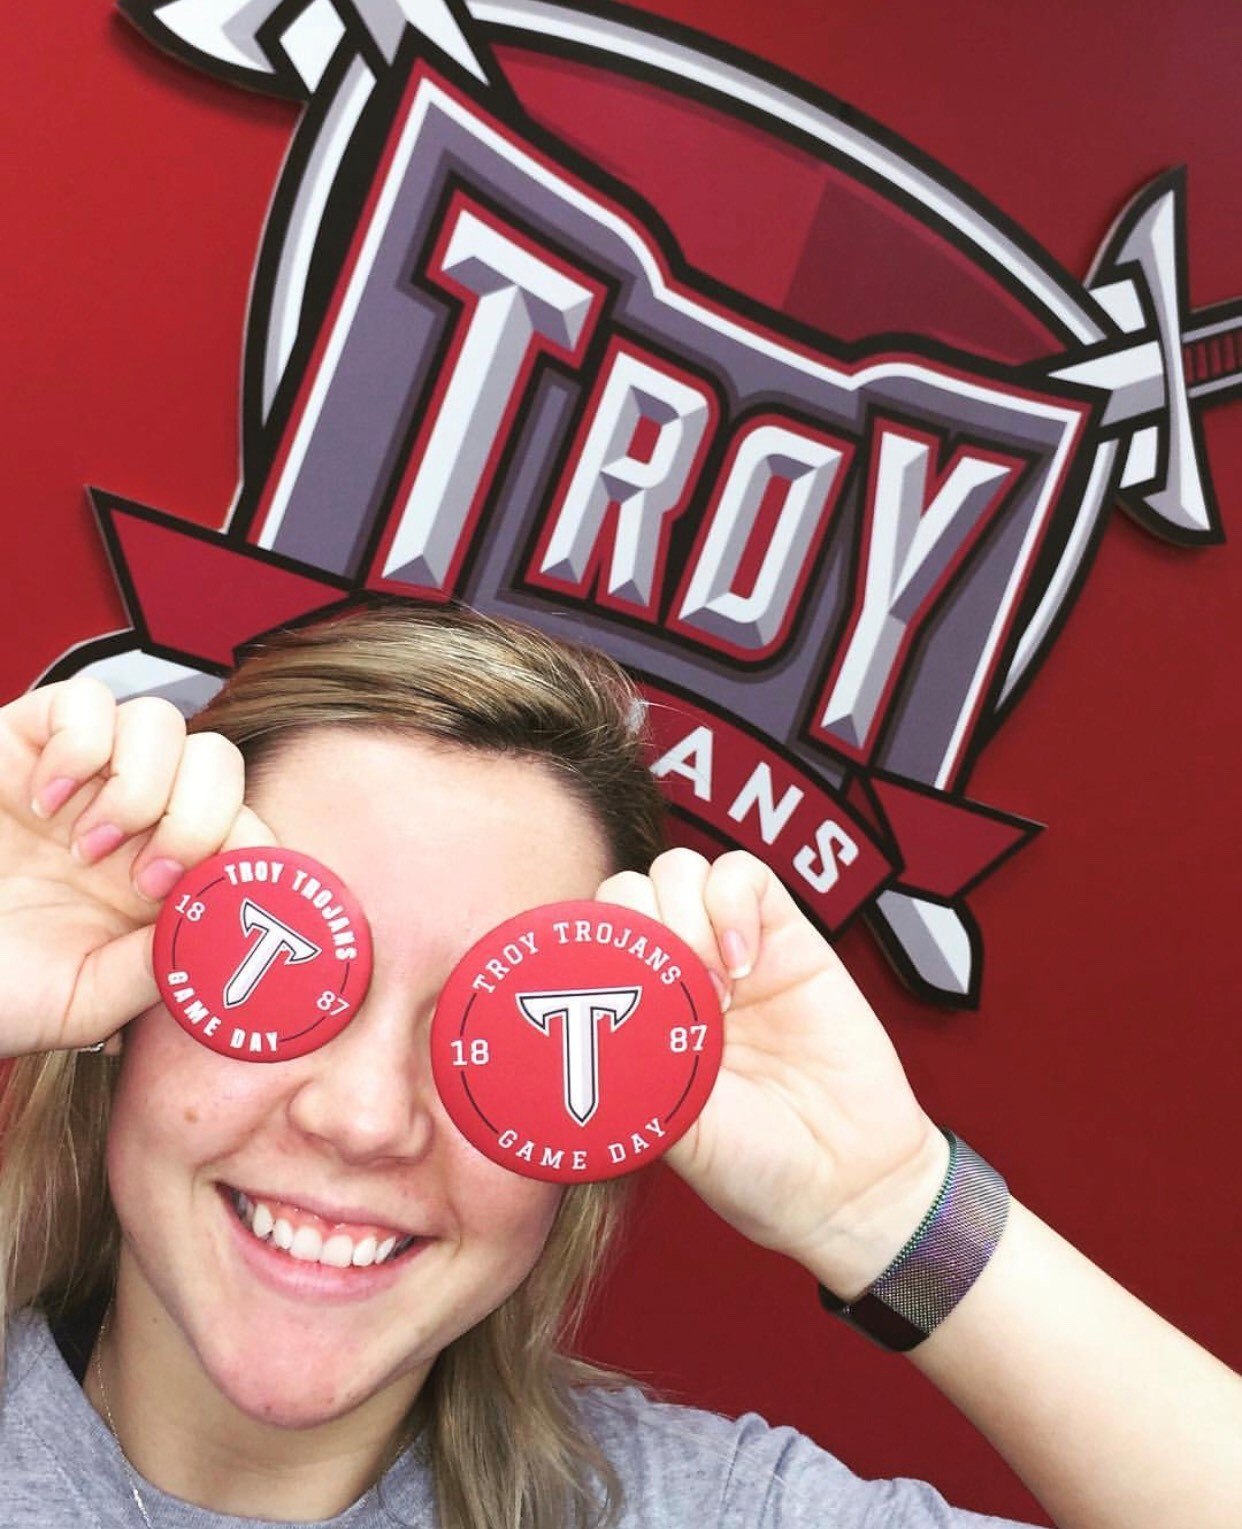 Troy University Game Day buttons